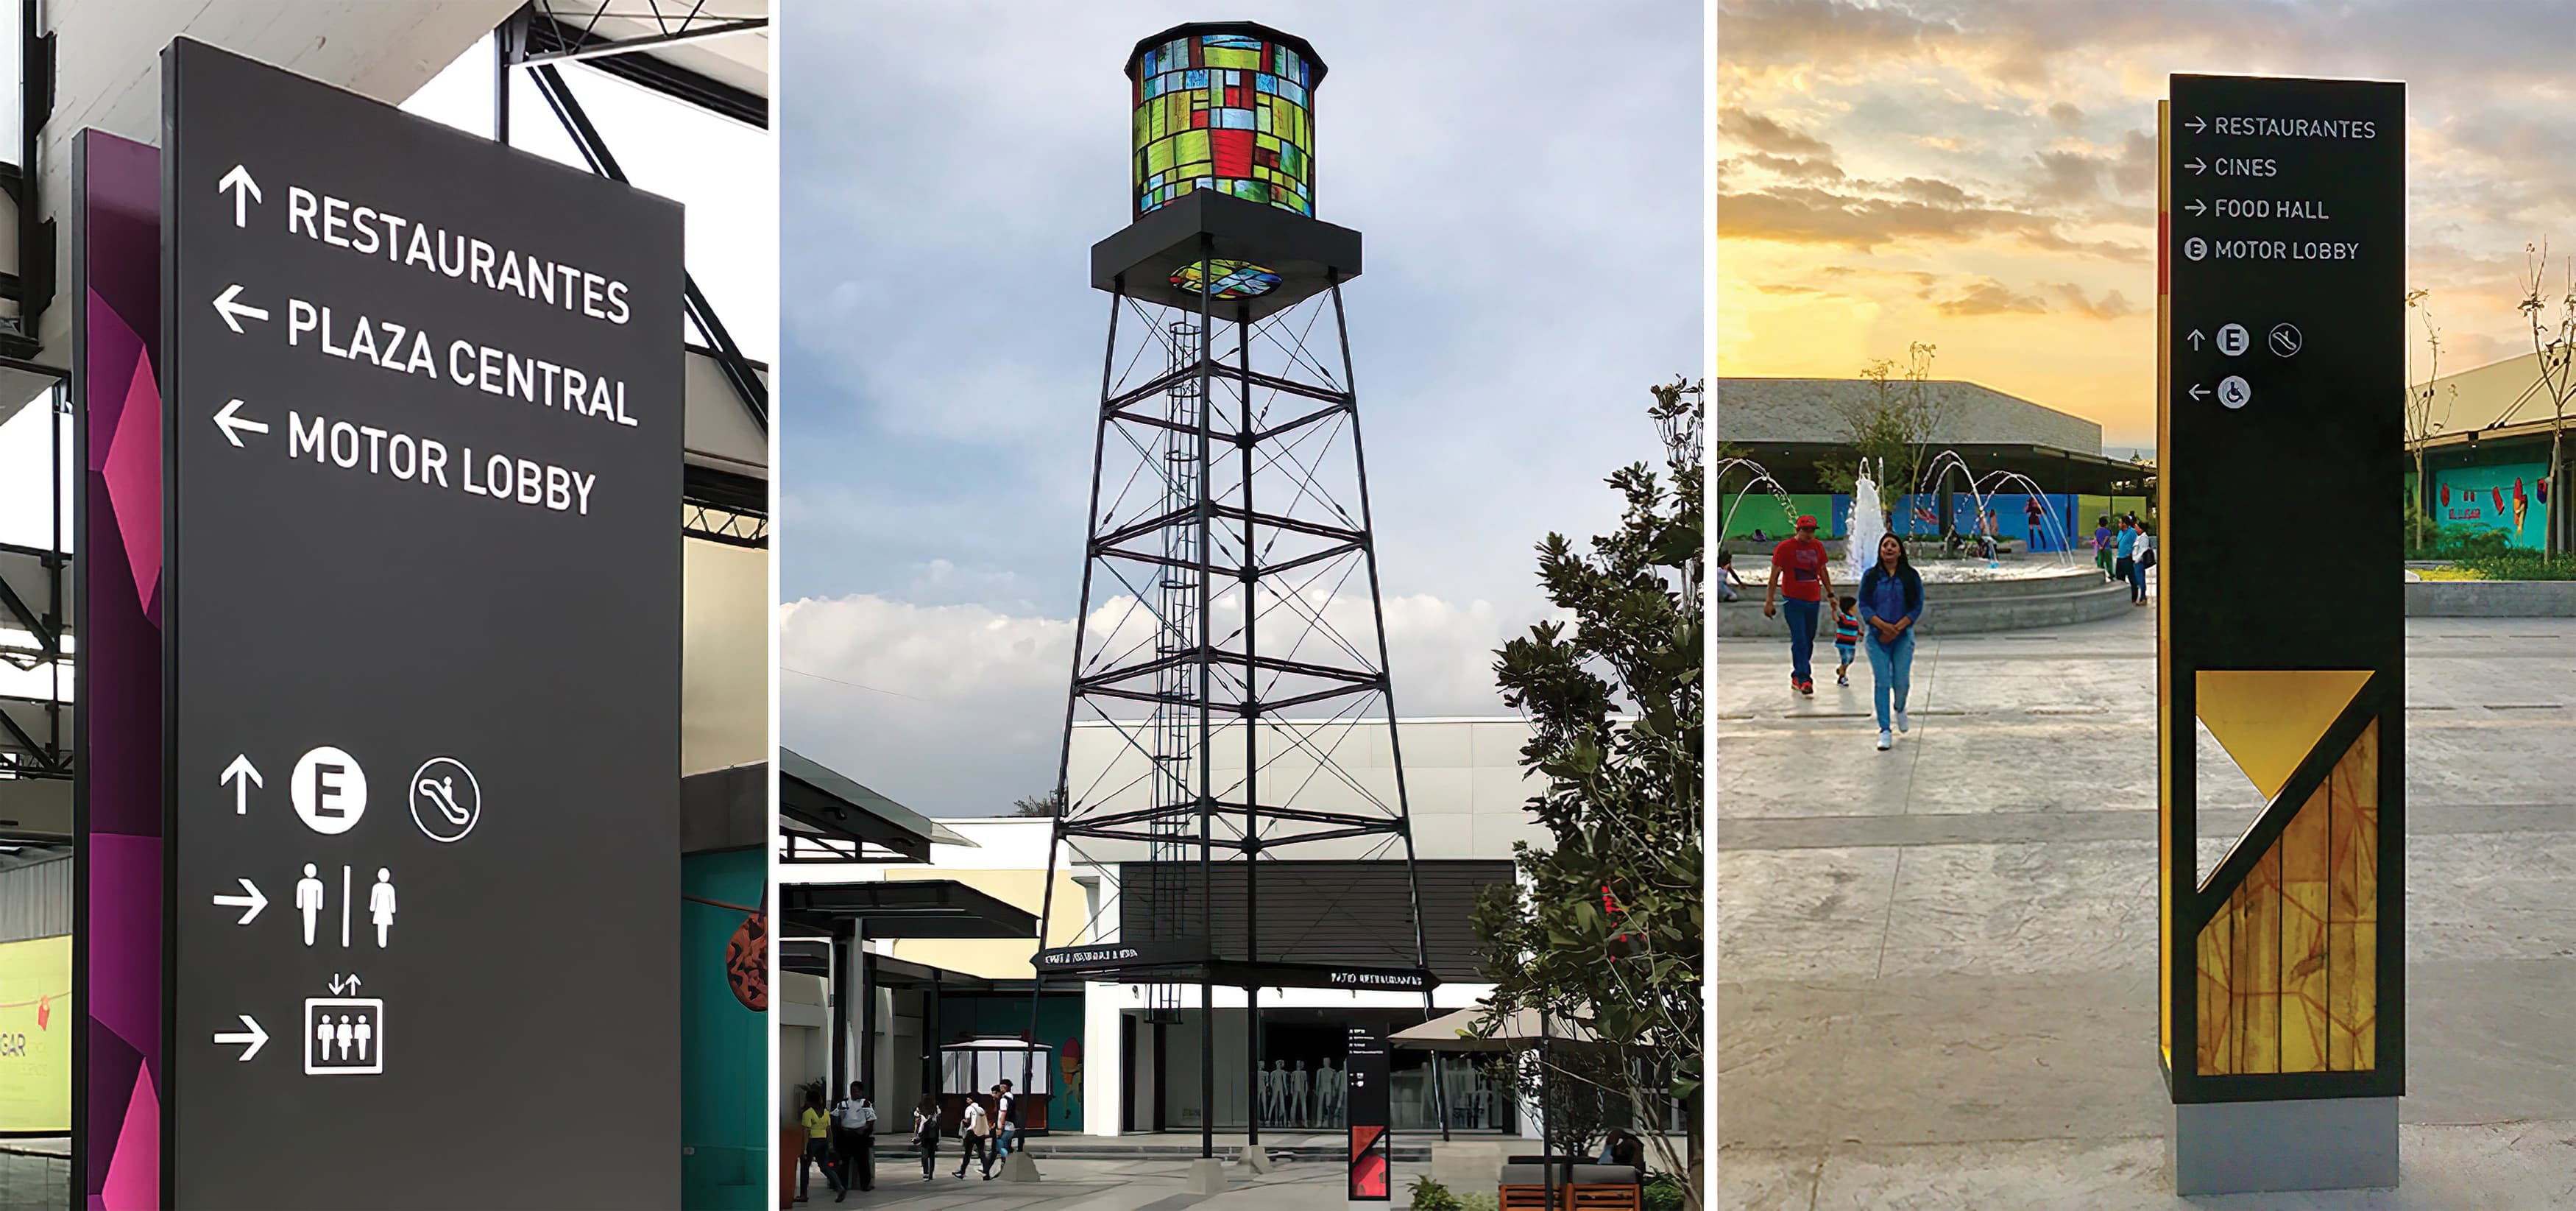 Forum Cuernavaca, a retail and mixed-use project in Cuernavaca, Mexico, flaunts colorfully-creative wayfinding design and specialty placemaking pieces.